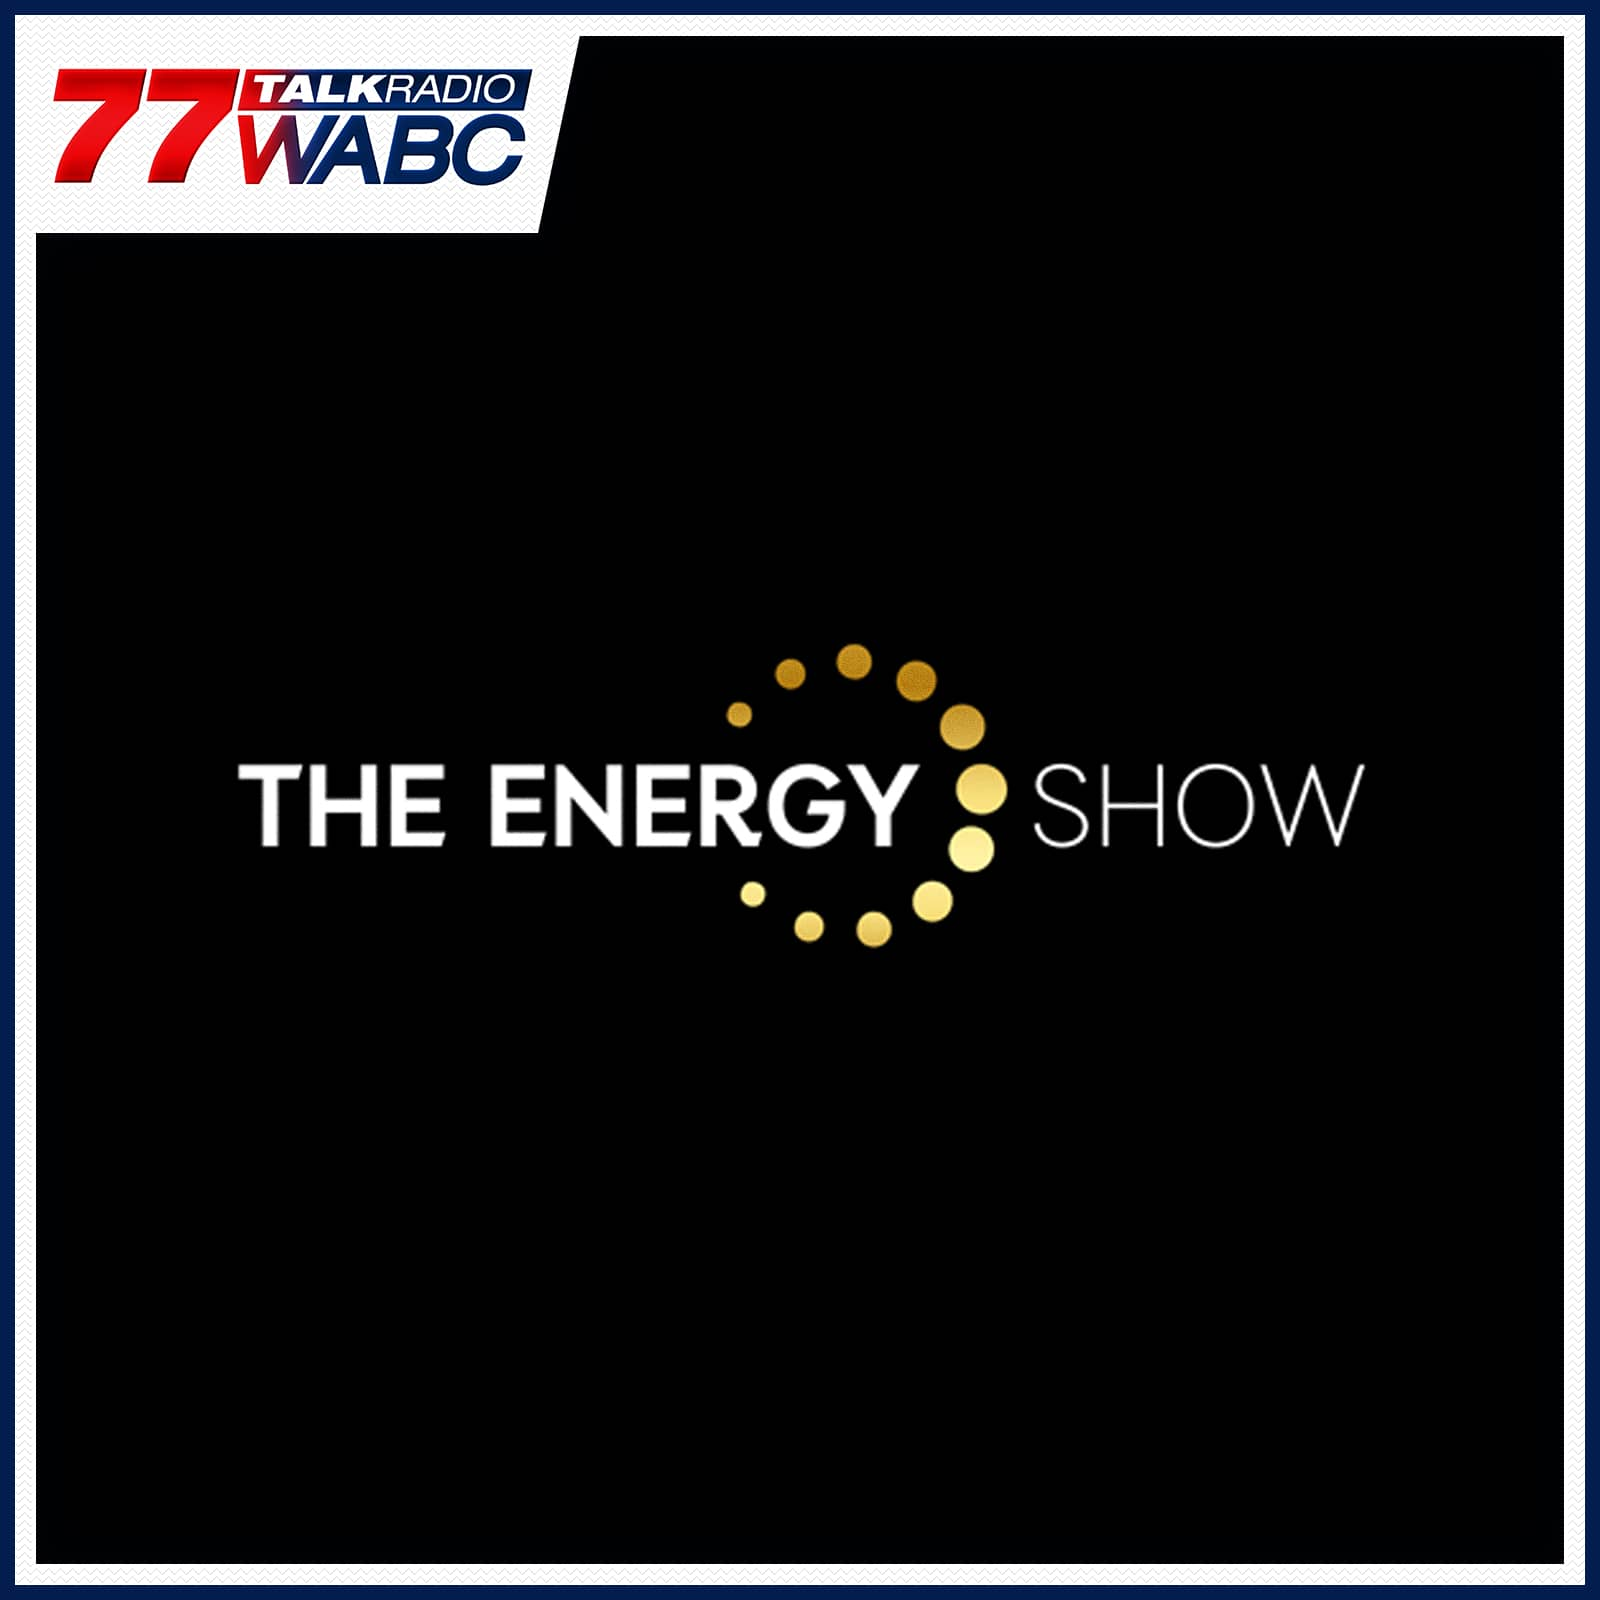 The Energy Show